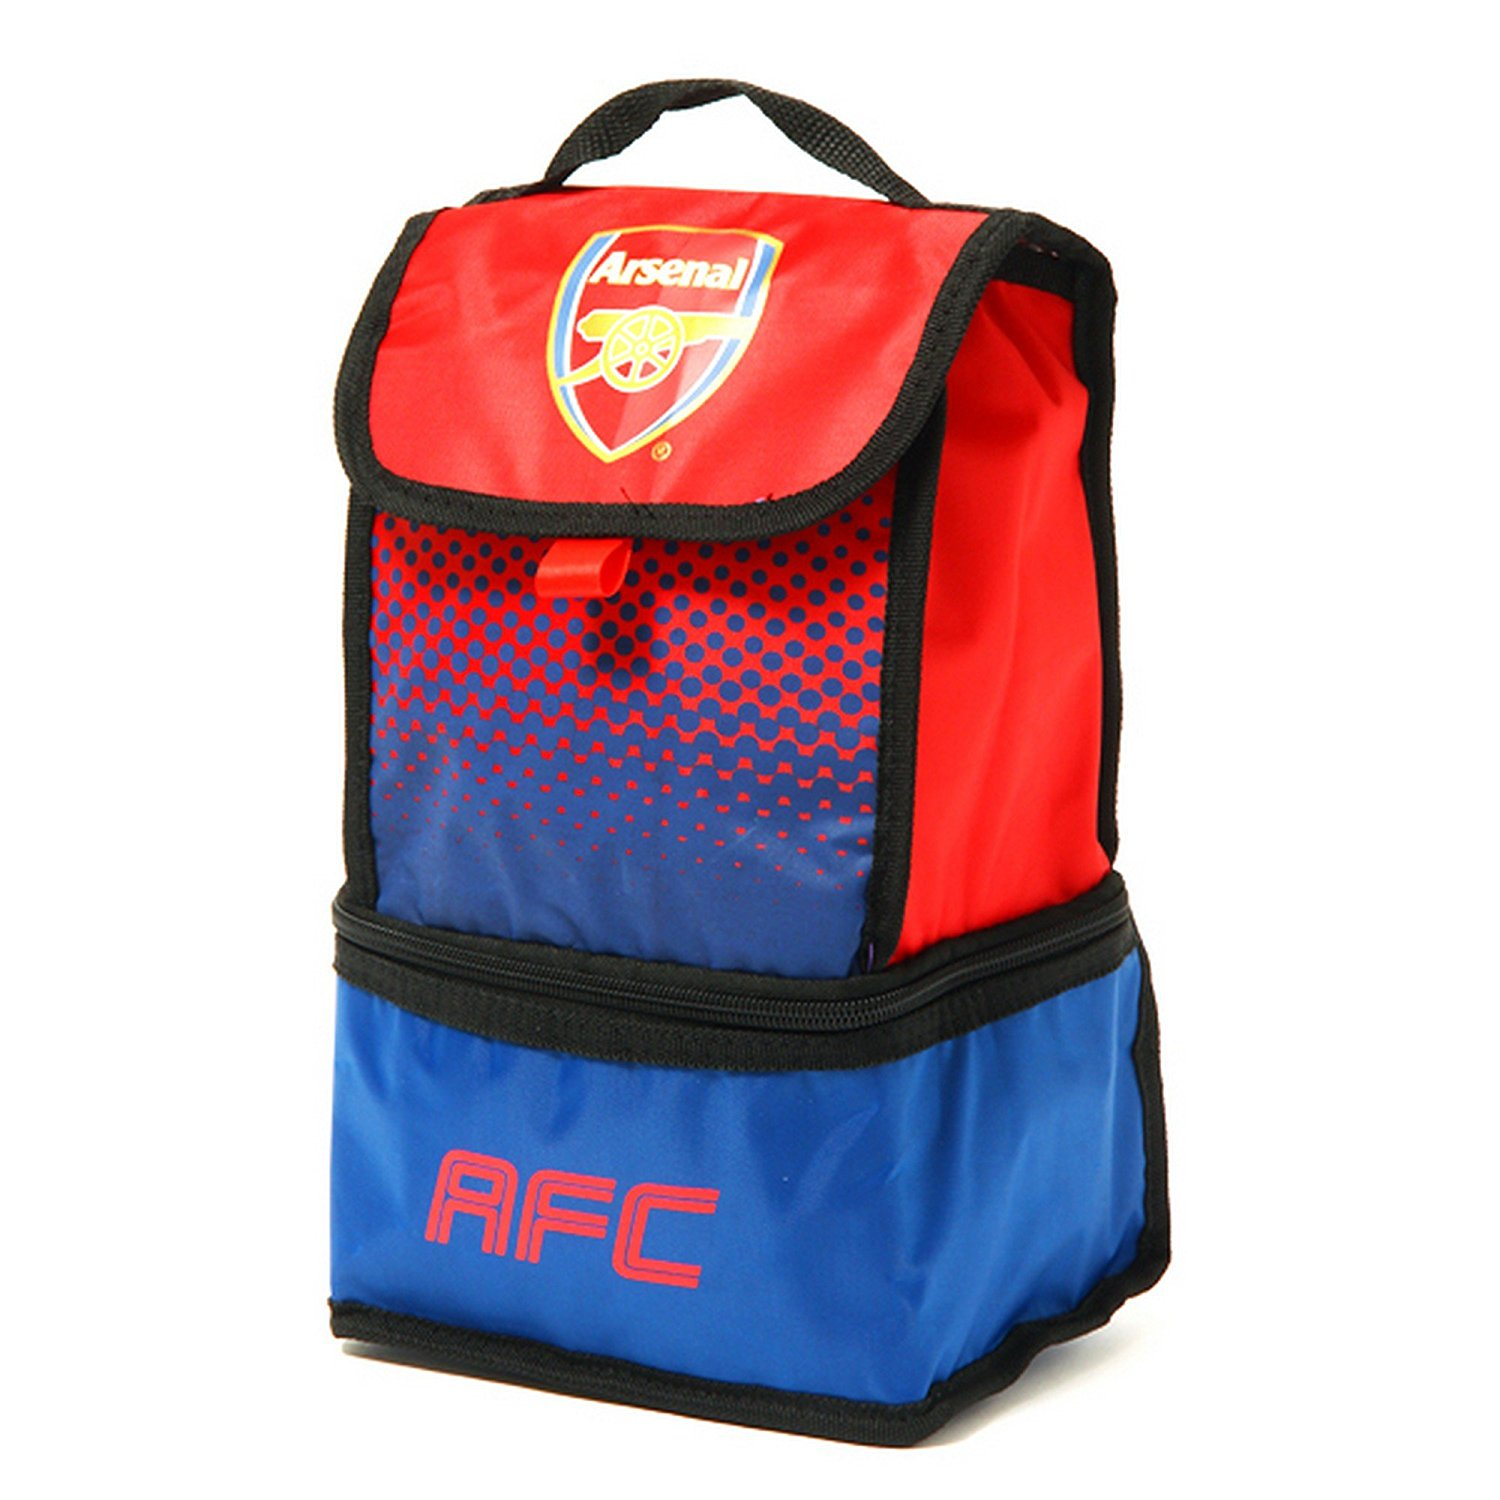 Arsenal FC Official Fade Insulated Football/Soccer Crest Lunch Bag (One Size) (Red/Blue)